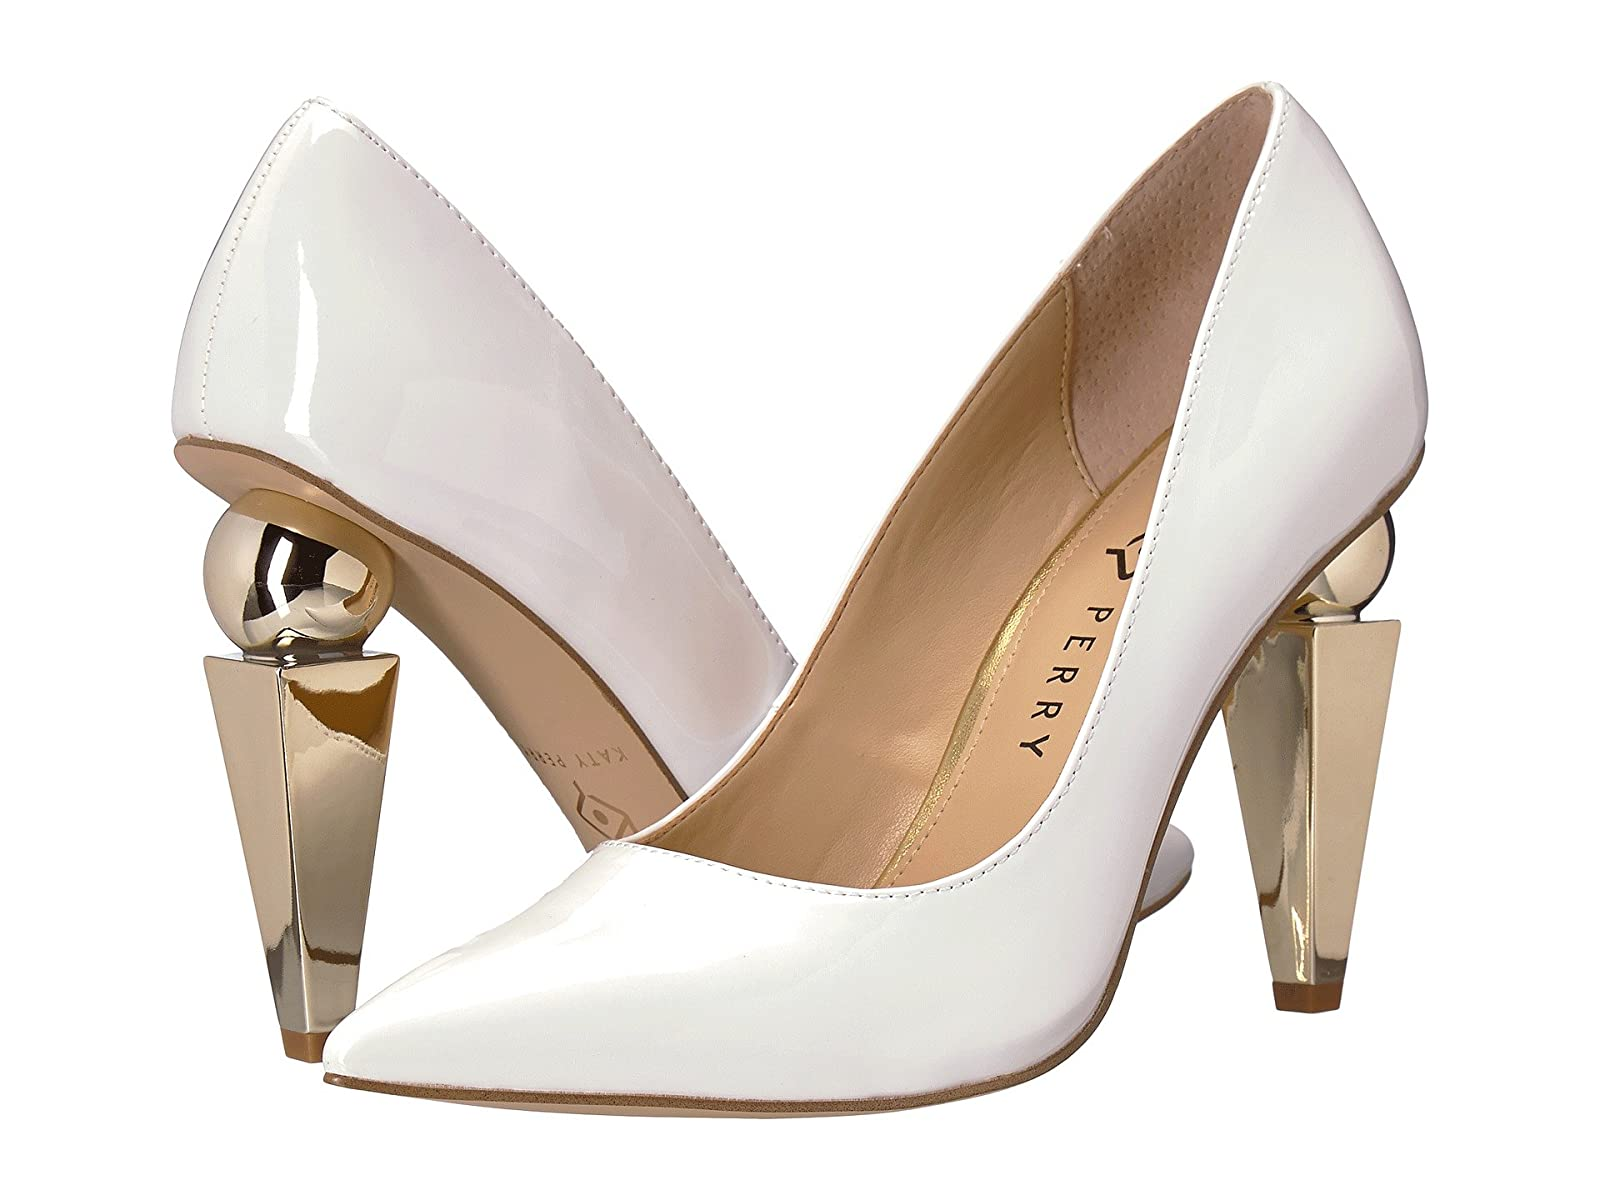 Katy Perry The MemphisAtmospheric grades have affordable shoes